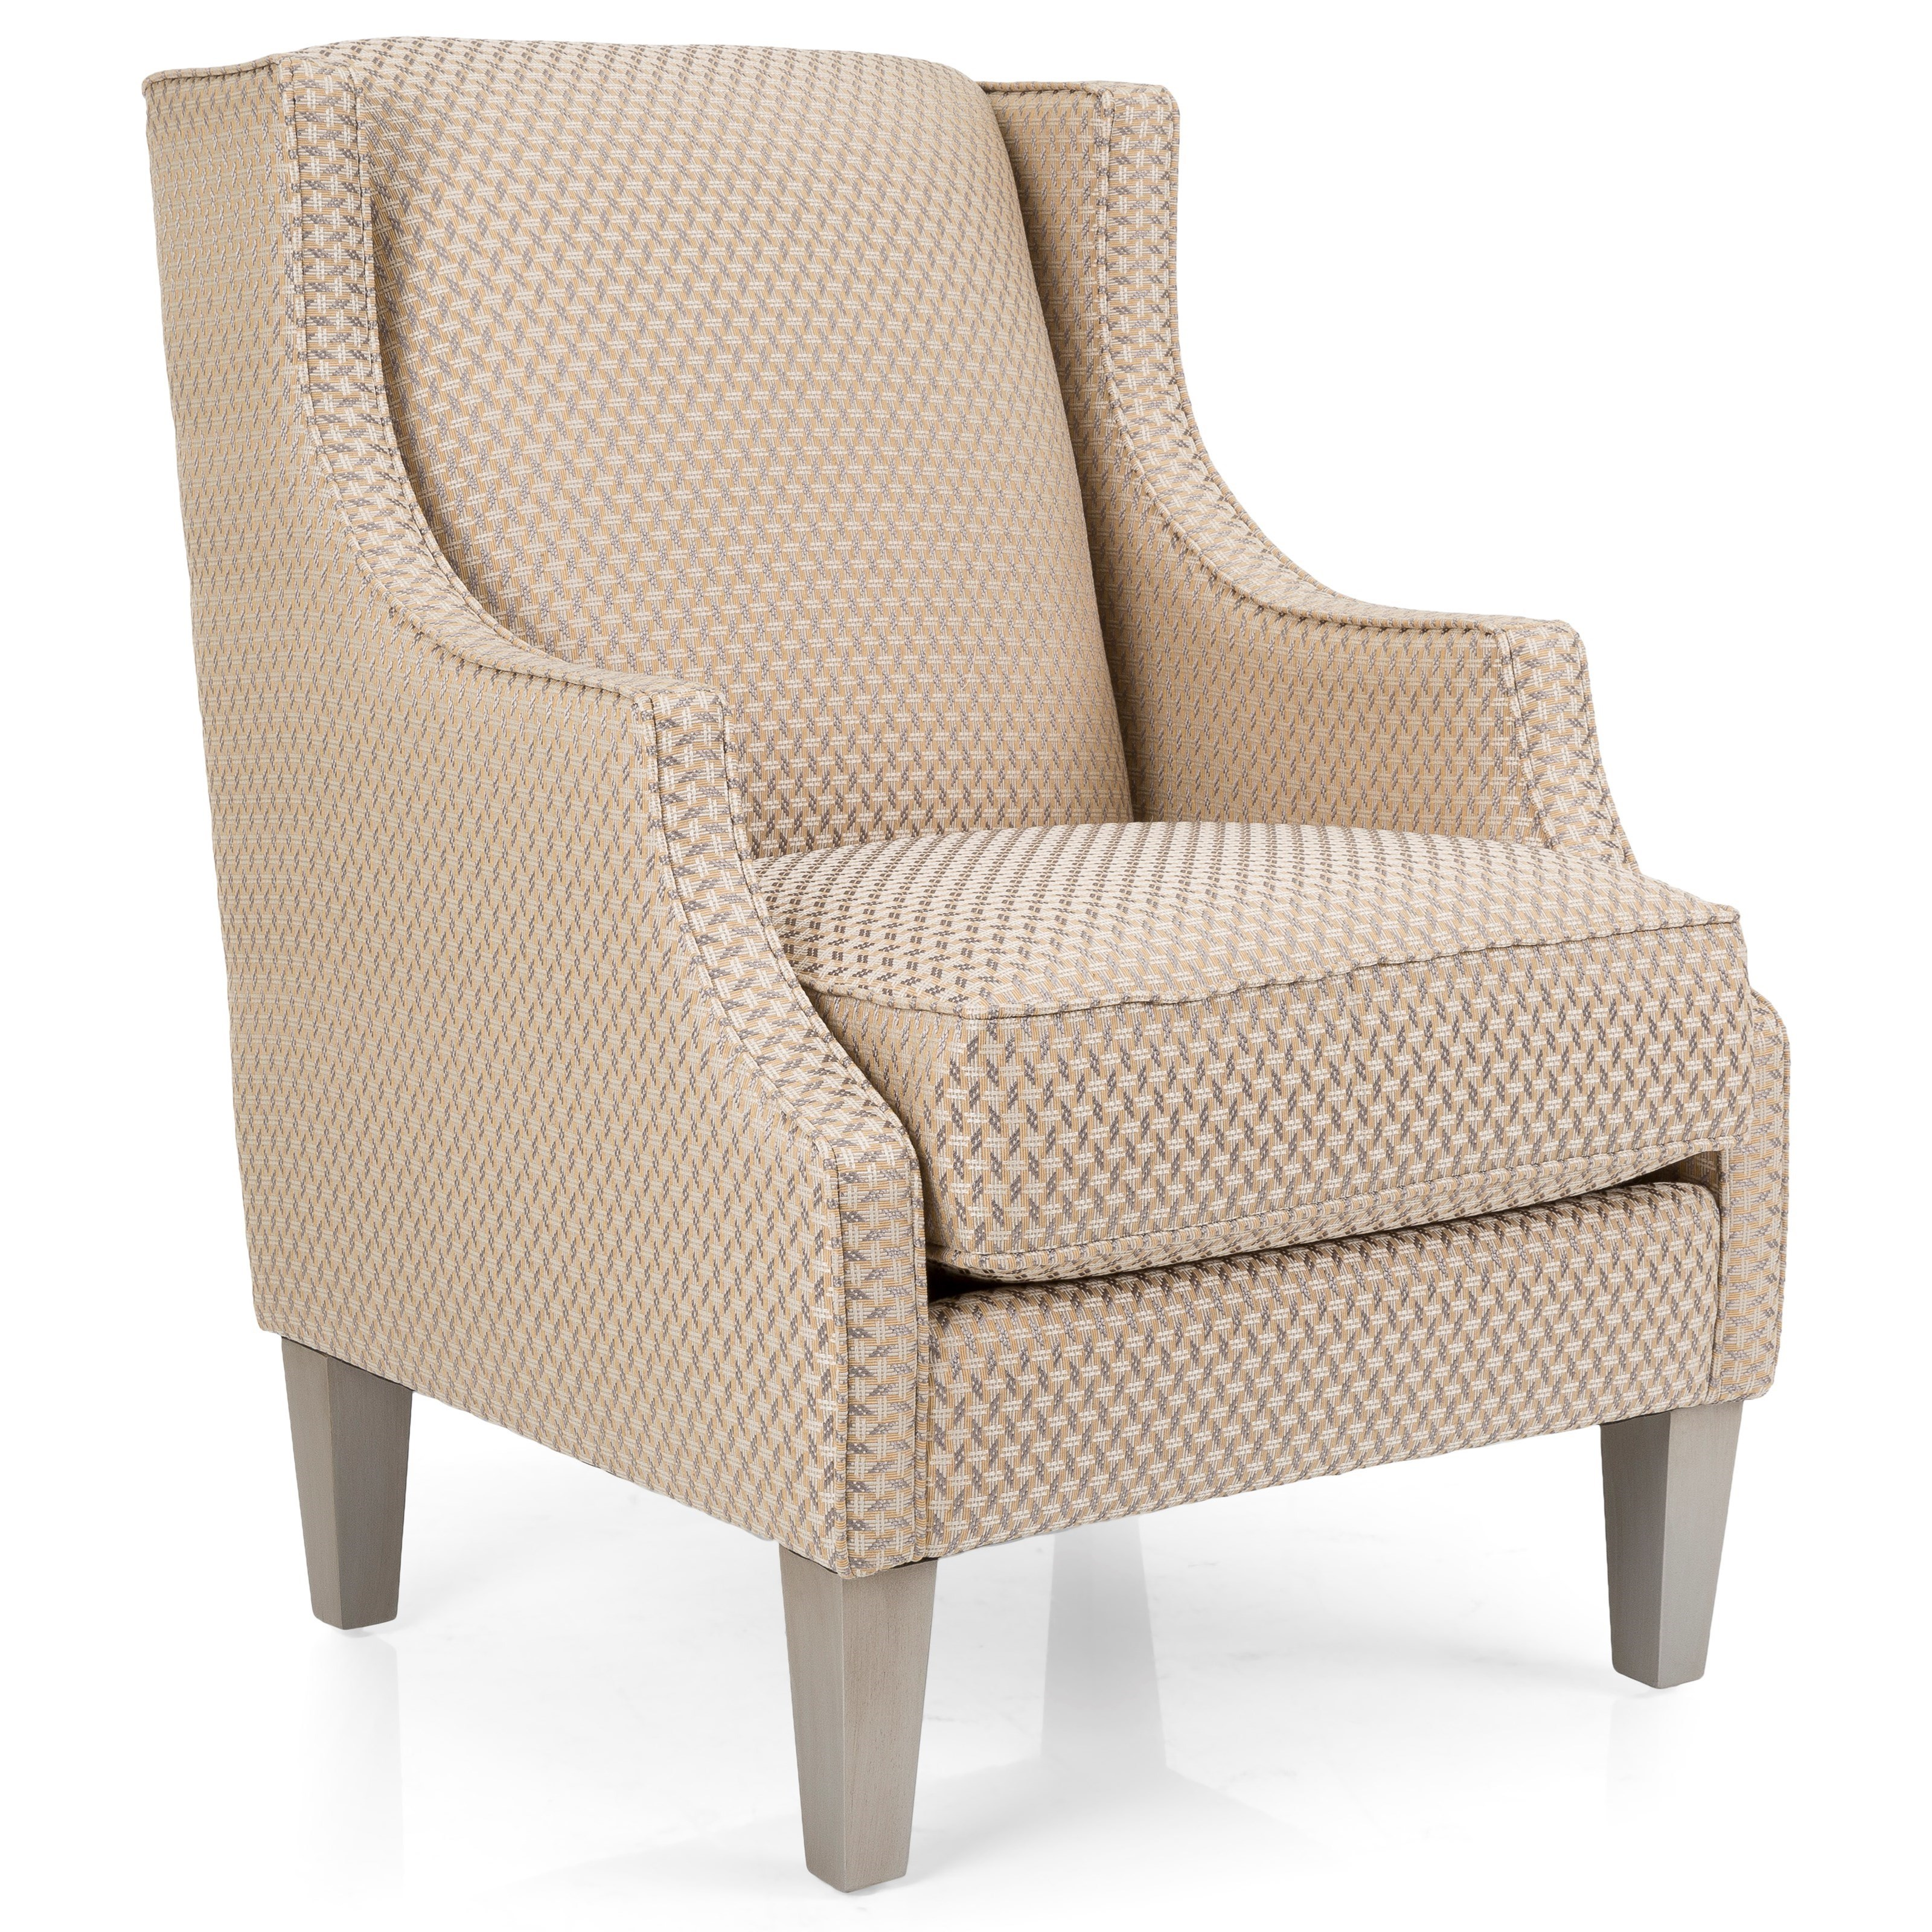 2920 Chair by Decor-Rest at Johnny Janosik